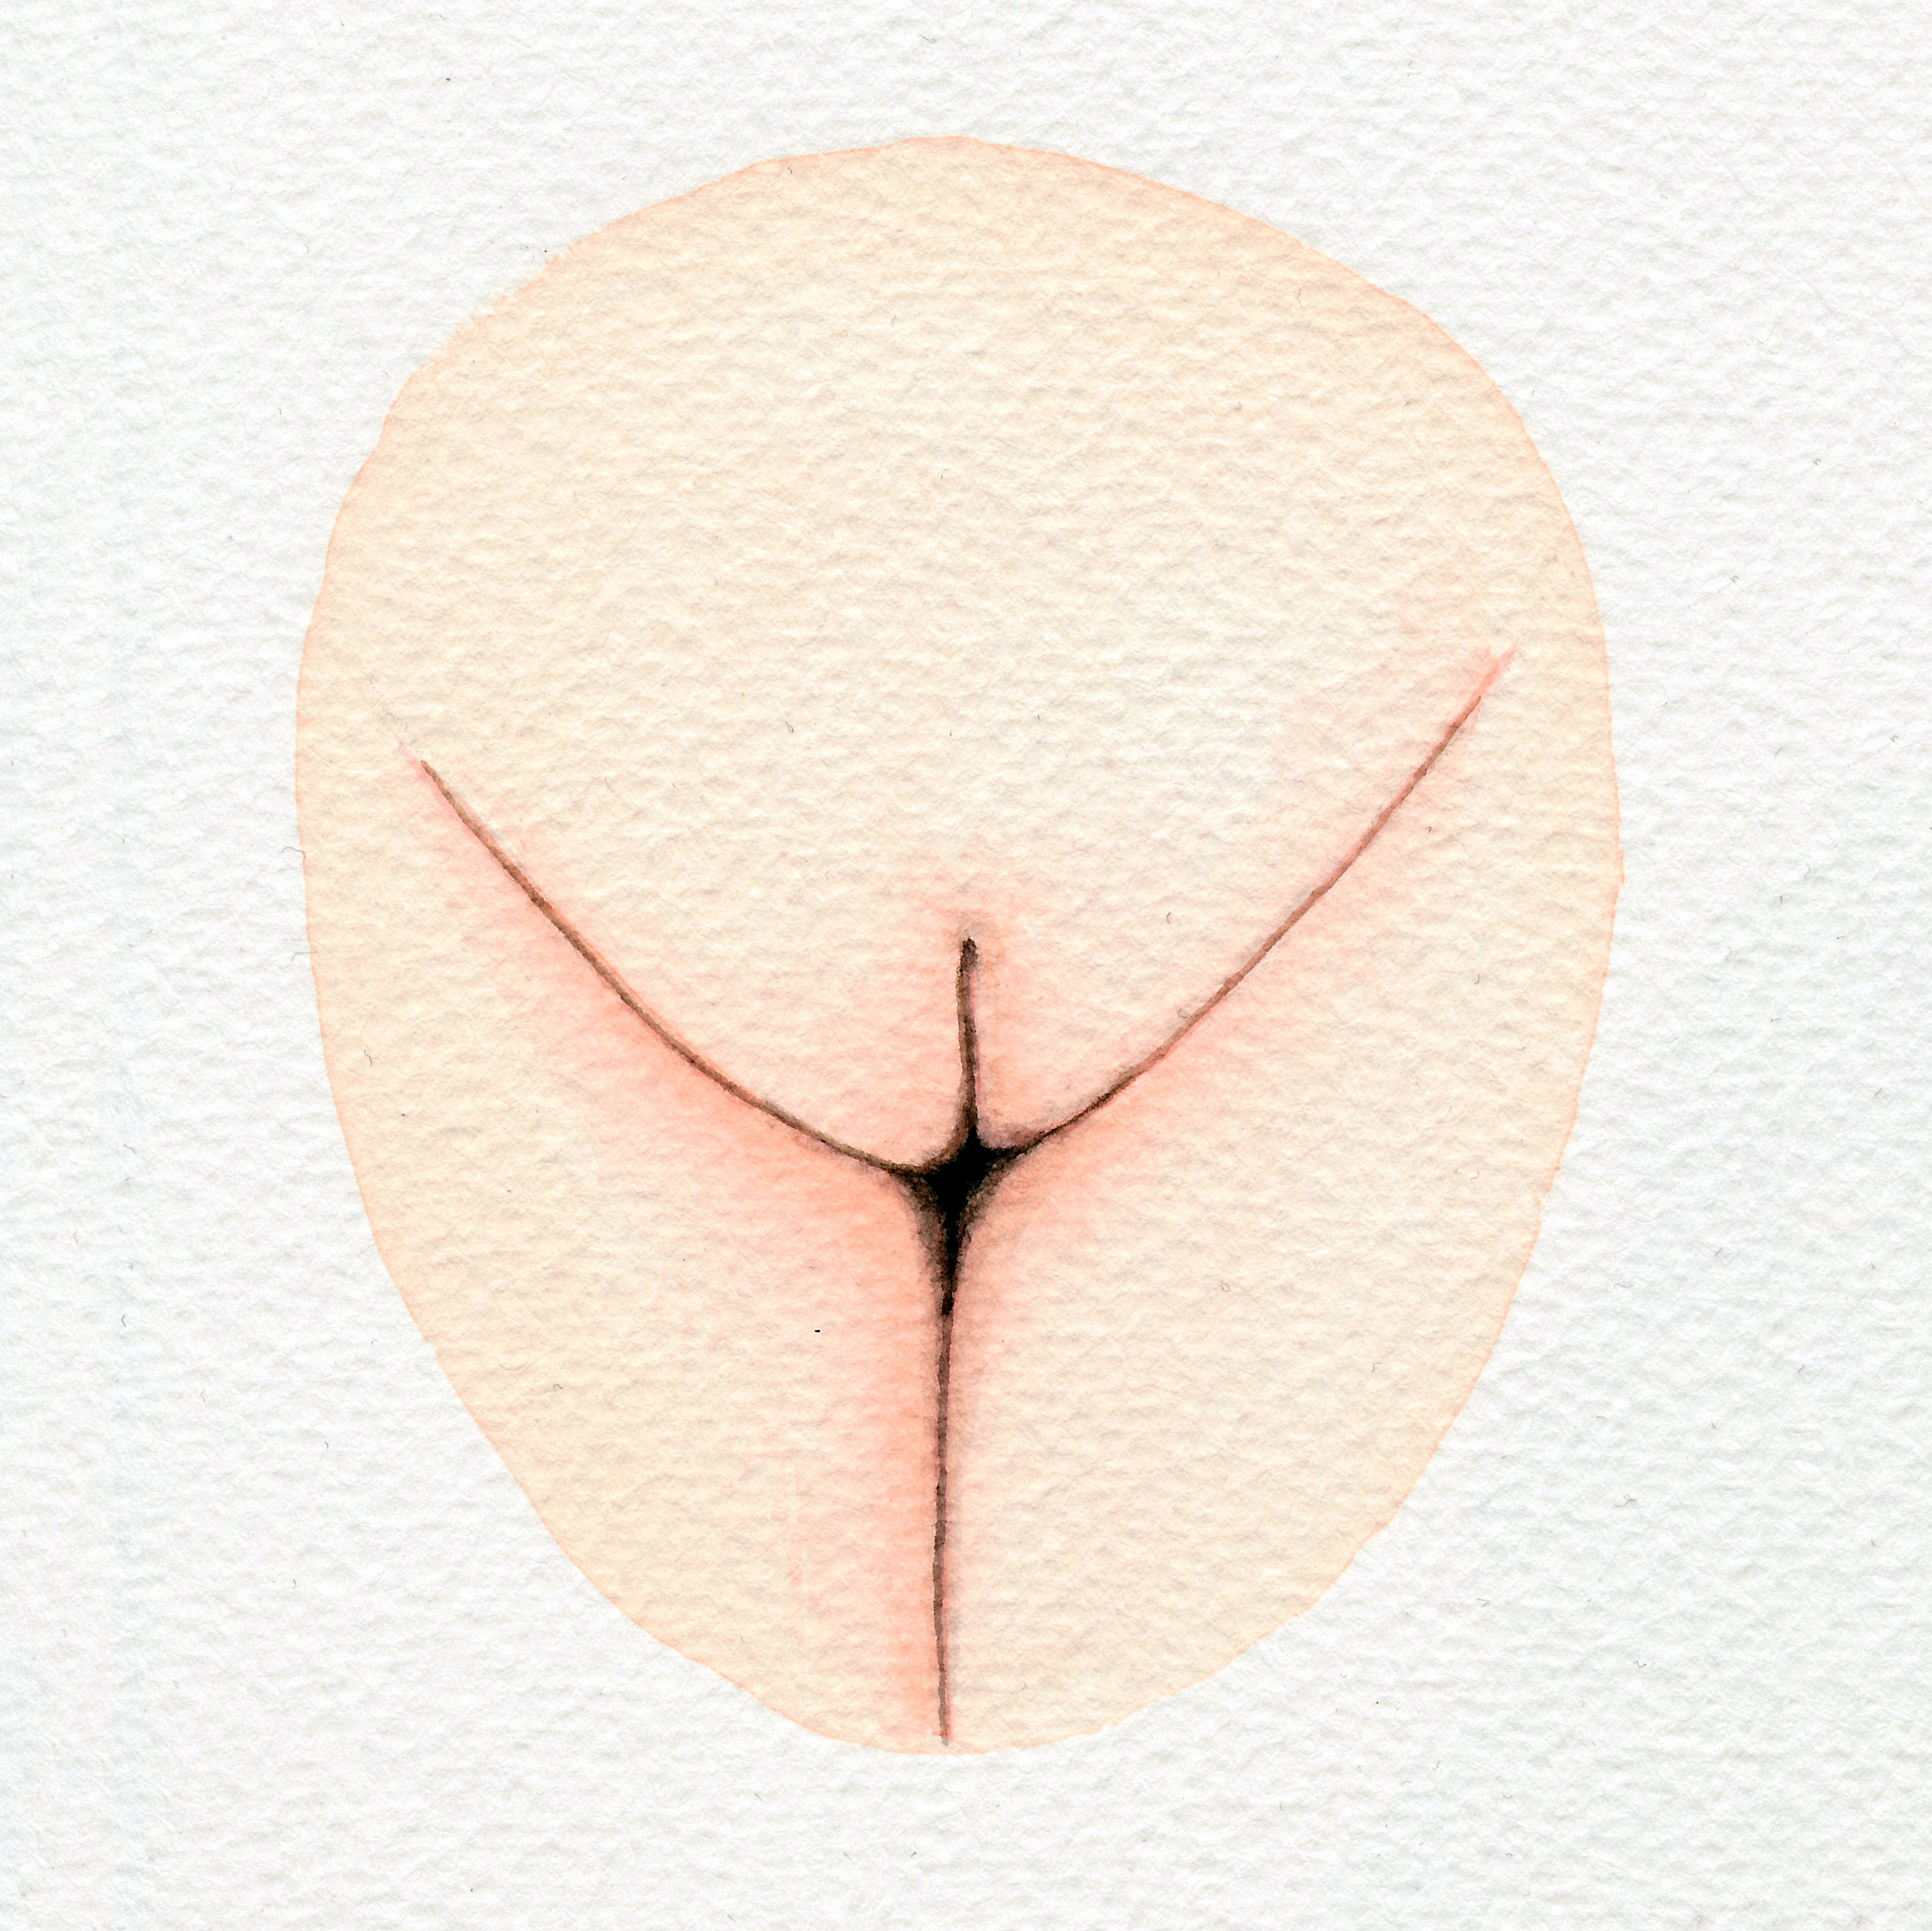 The Vulva Gallery - Vulva Portrait #163 (s).jpg